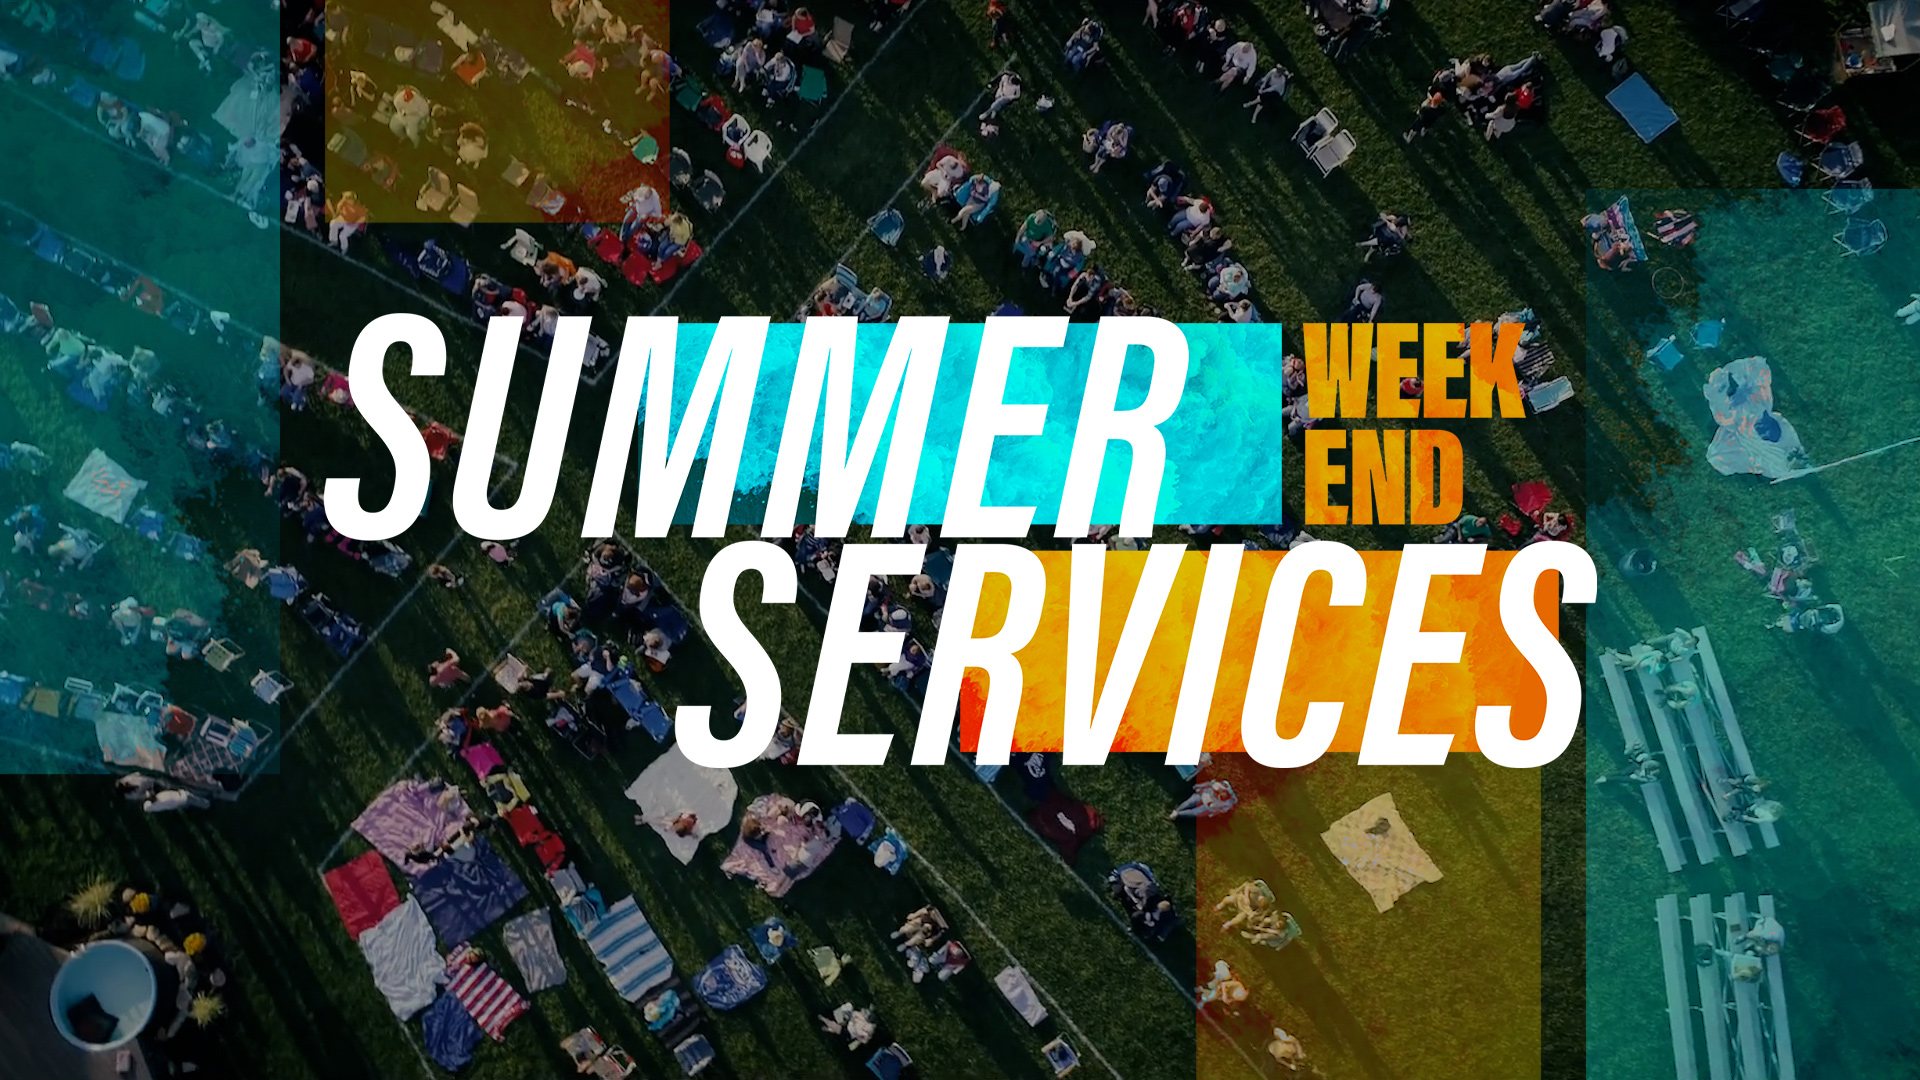 Summer Services